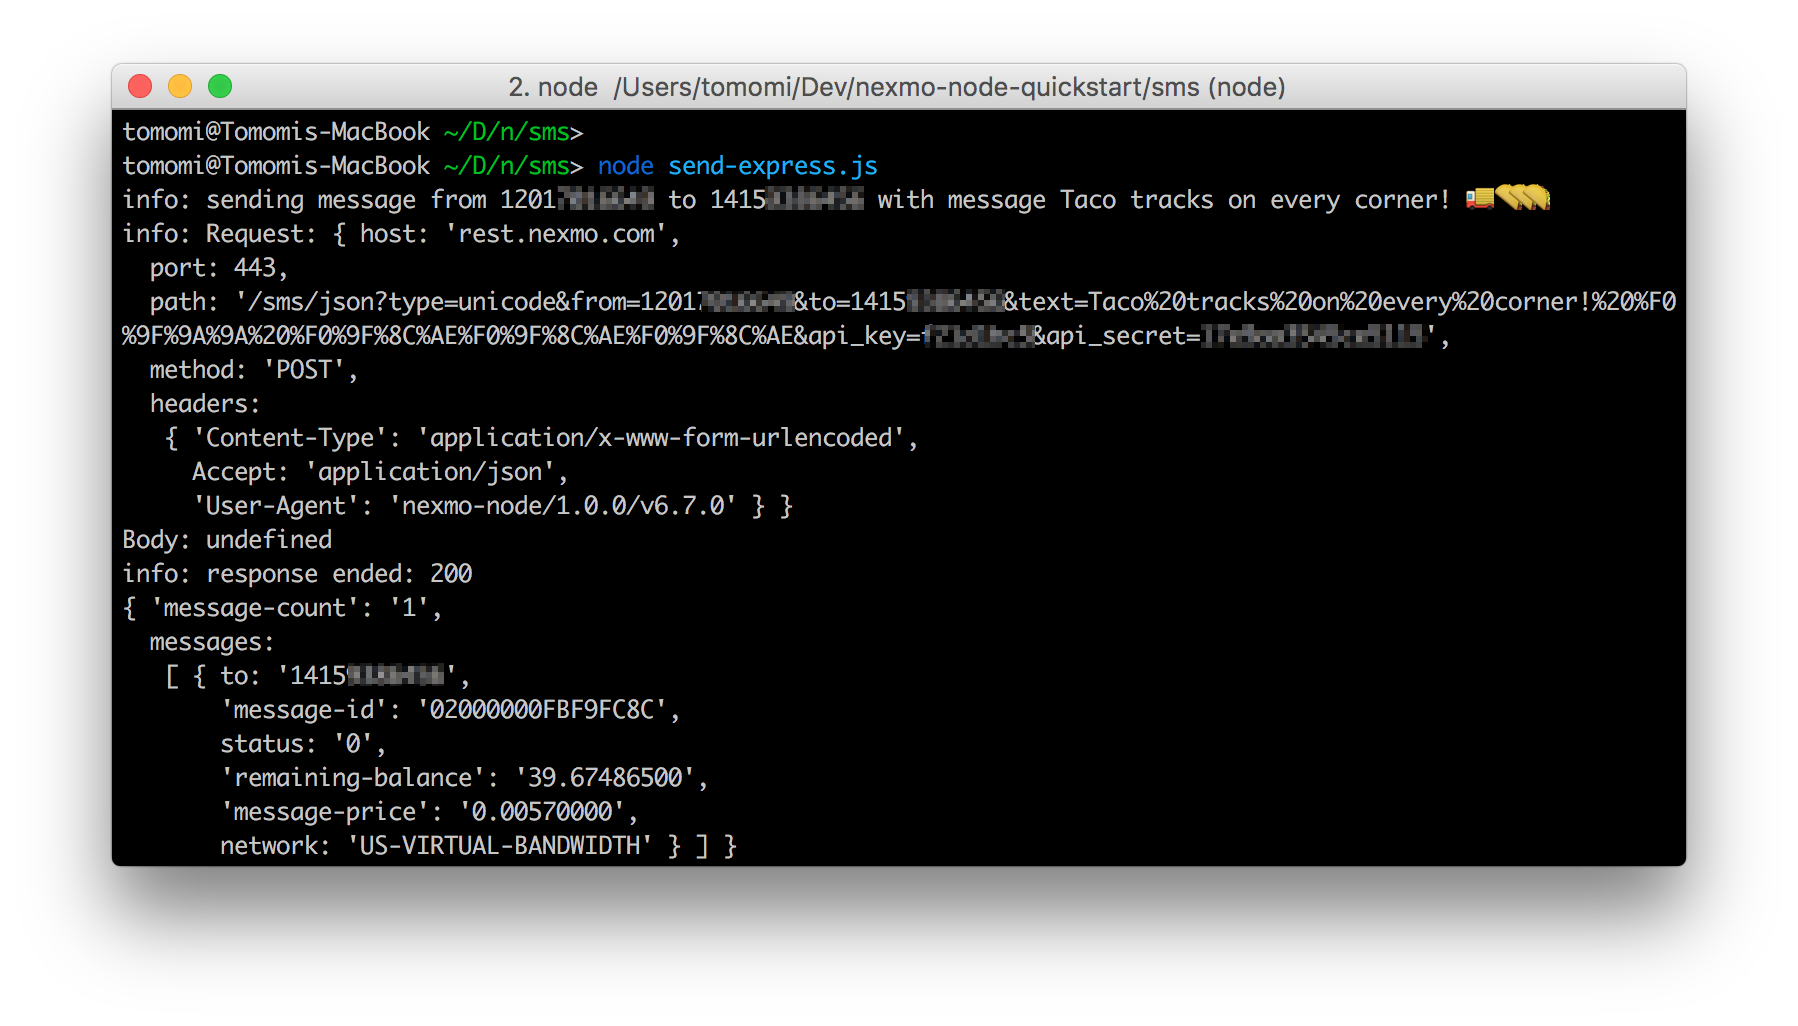 How to Add SMS to Your Node js Apps with Express